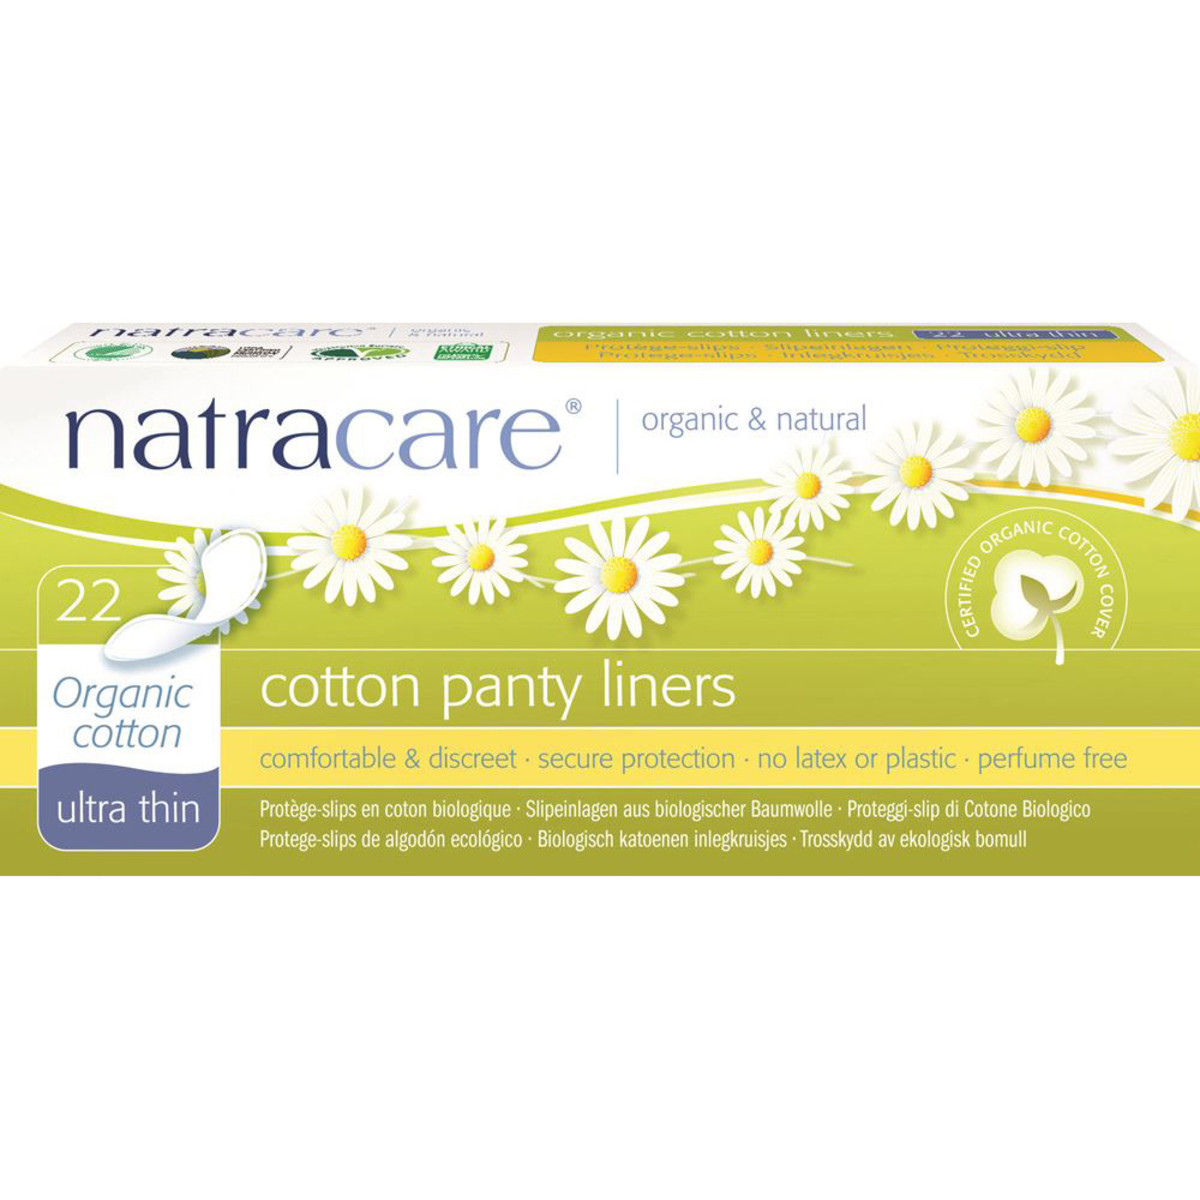 NATRACARE PANTY LINERS ULTRA THIN ORGANIC COTTON COVER 22 PACK